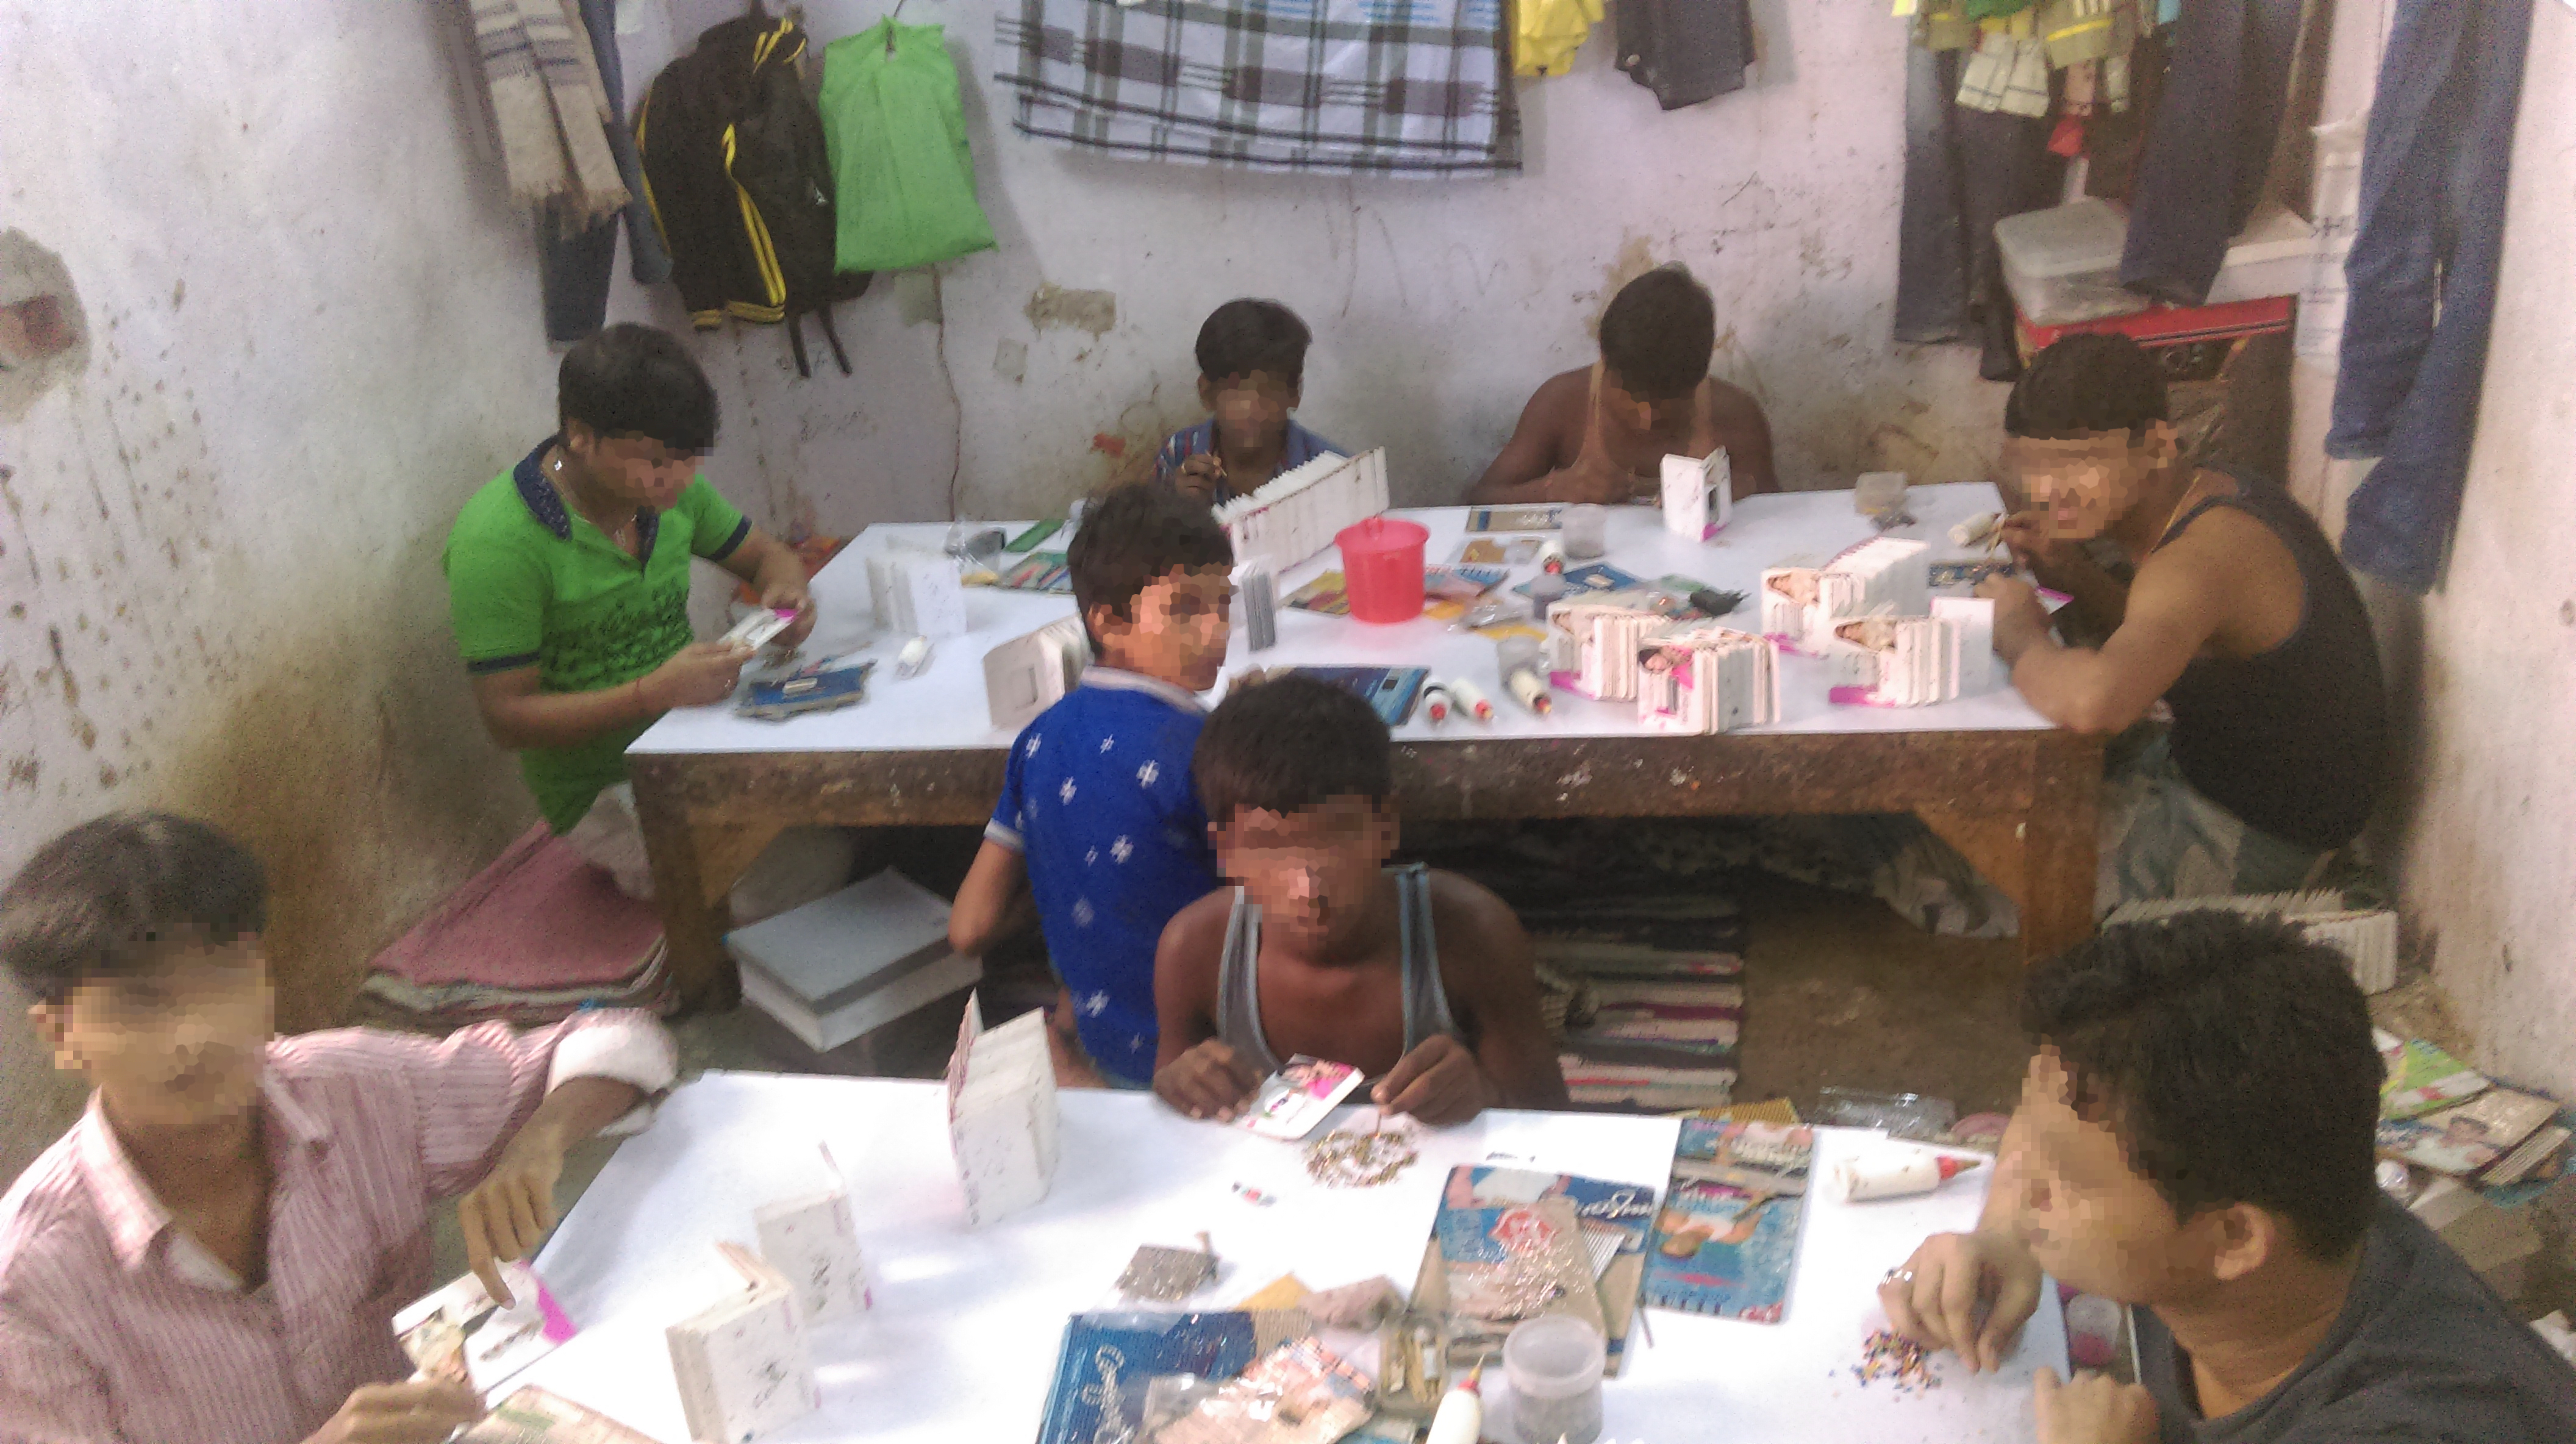 children at the bonded labor site